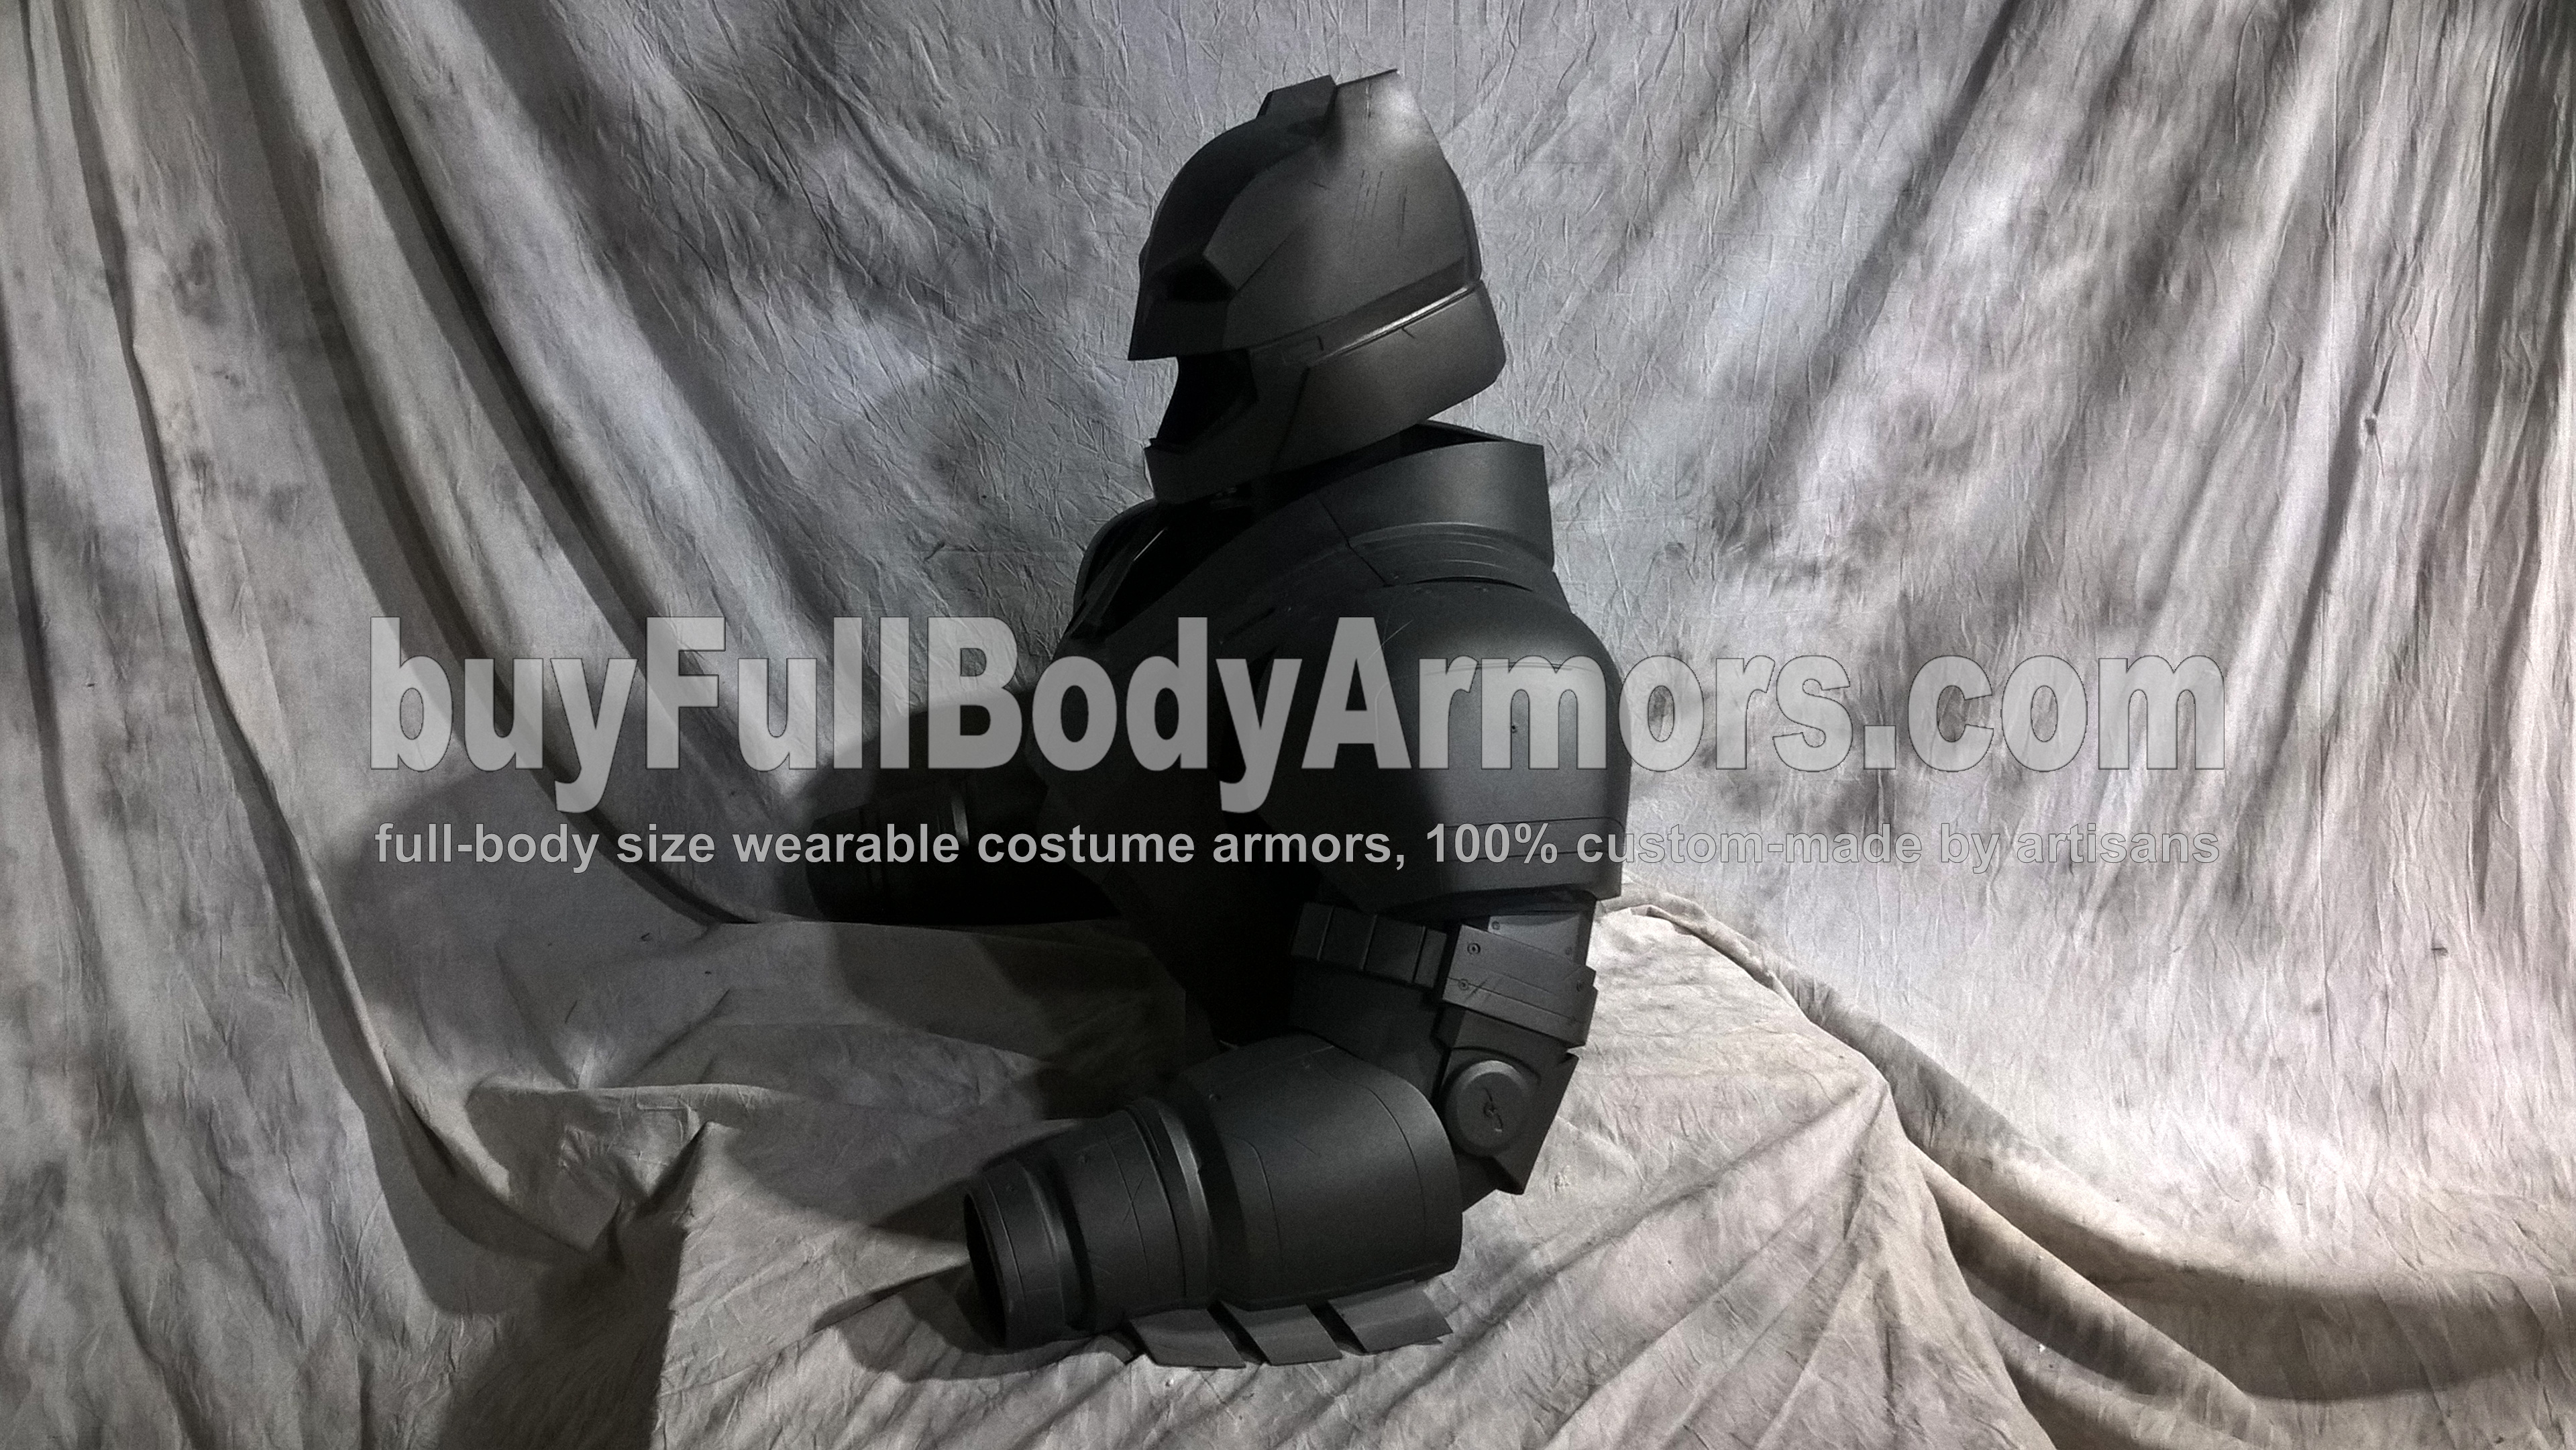 The New Wearable Armored Batsuit - the Batman Armor Costume Suit from the Movie Batman v Superman: Dawn Of Justice - the Top Half 5